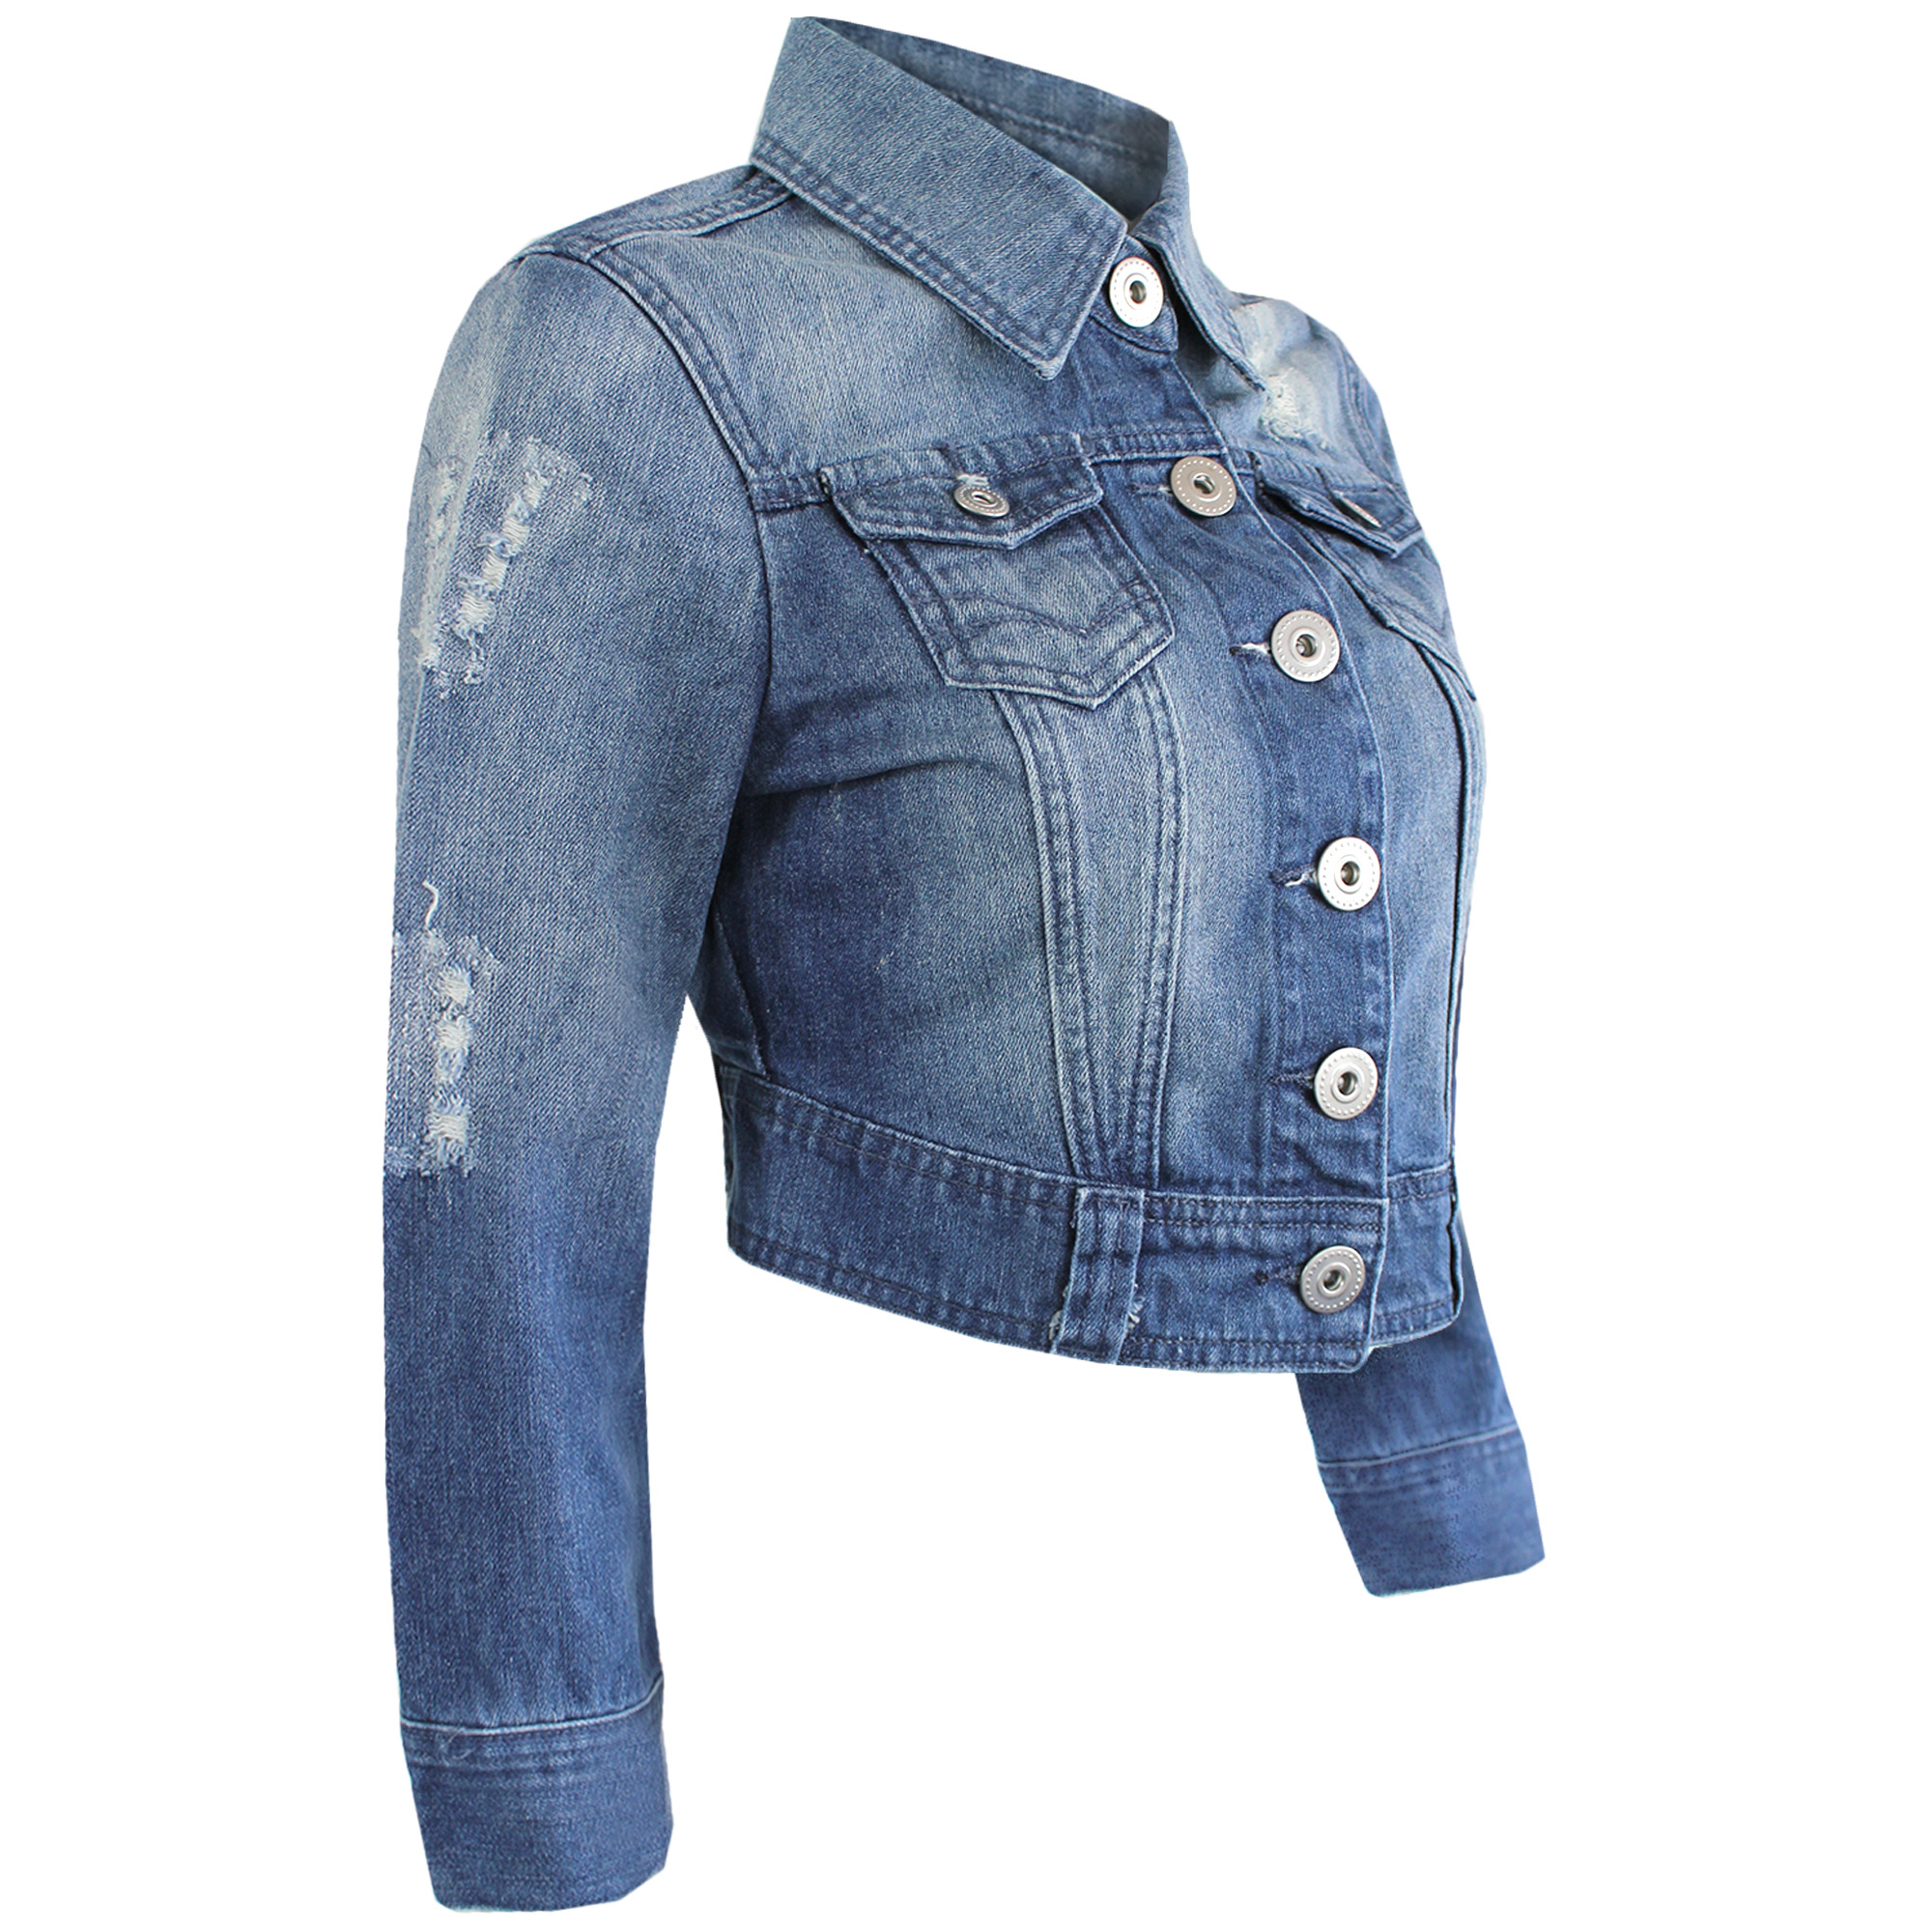 LADIES CROPPED DENIM BLUE WASH JACKET WOMENS FESTIVAL JEANS COAT ...